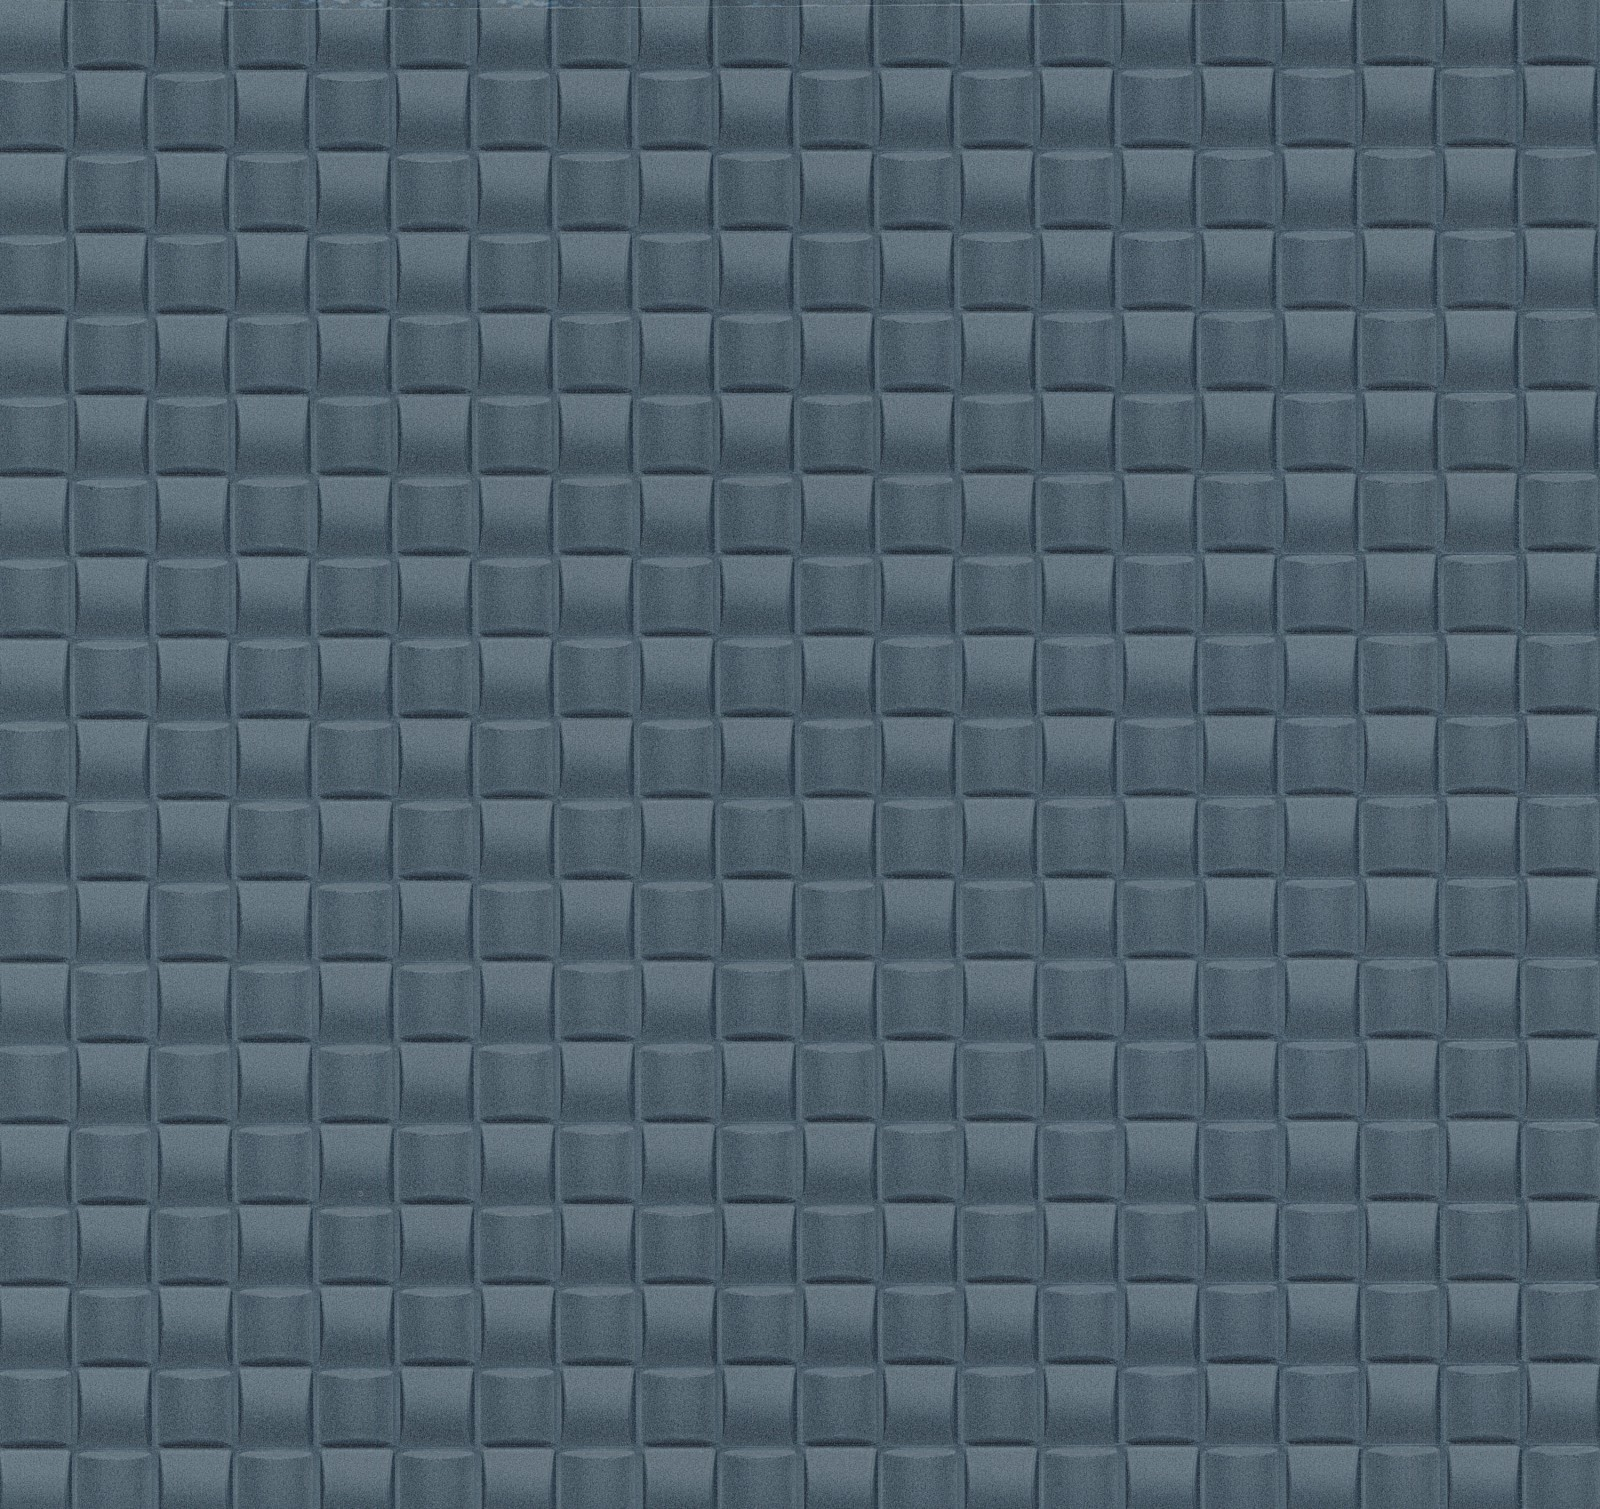 Wallpaper guido maria kretschmer tile blue 02468 50 - Tapete blau ...